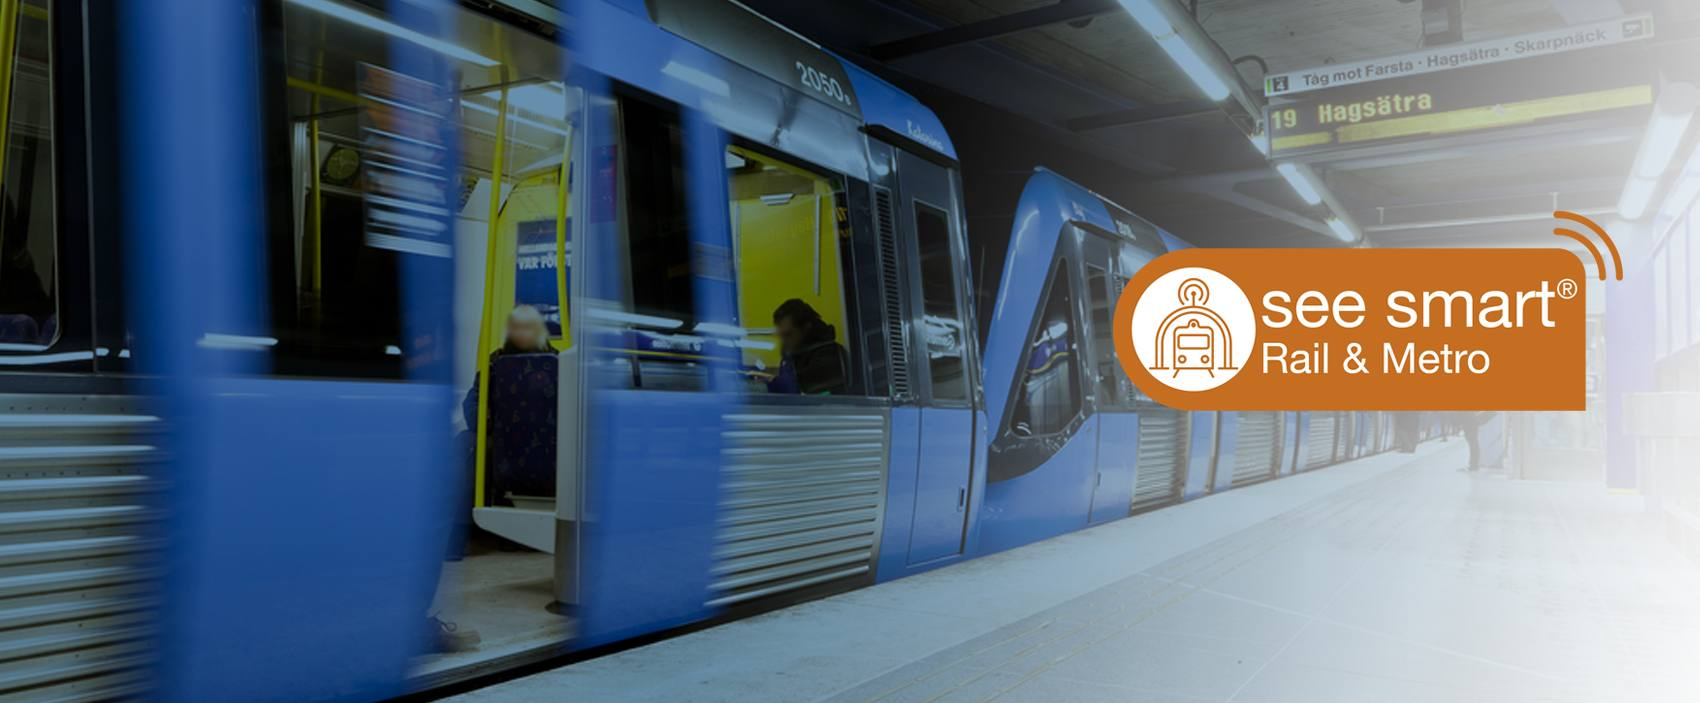 See smart rail & metro- cost-effective radio coverage solutions for railway tunnels and metro